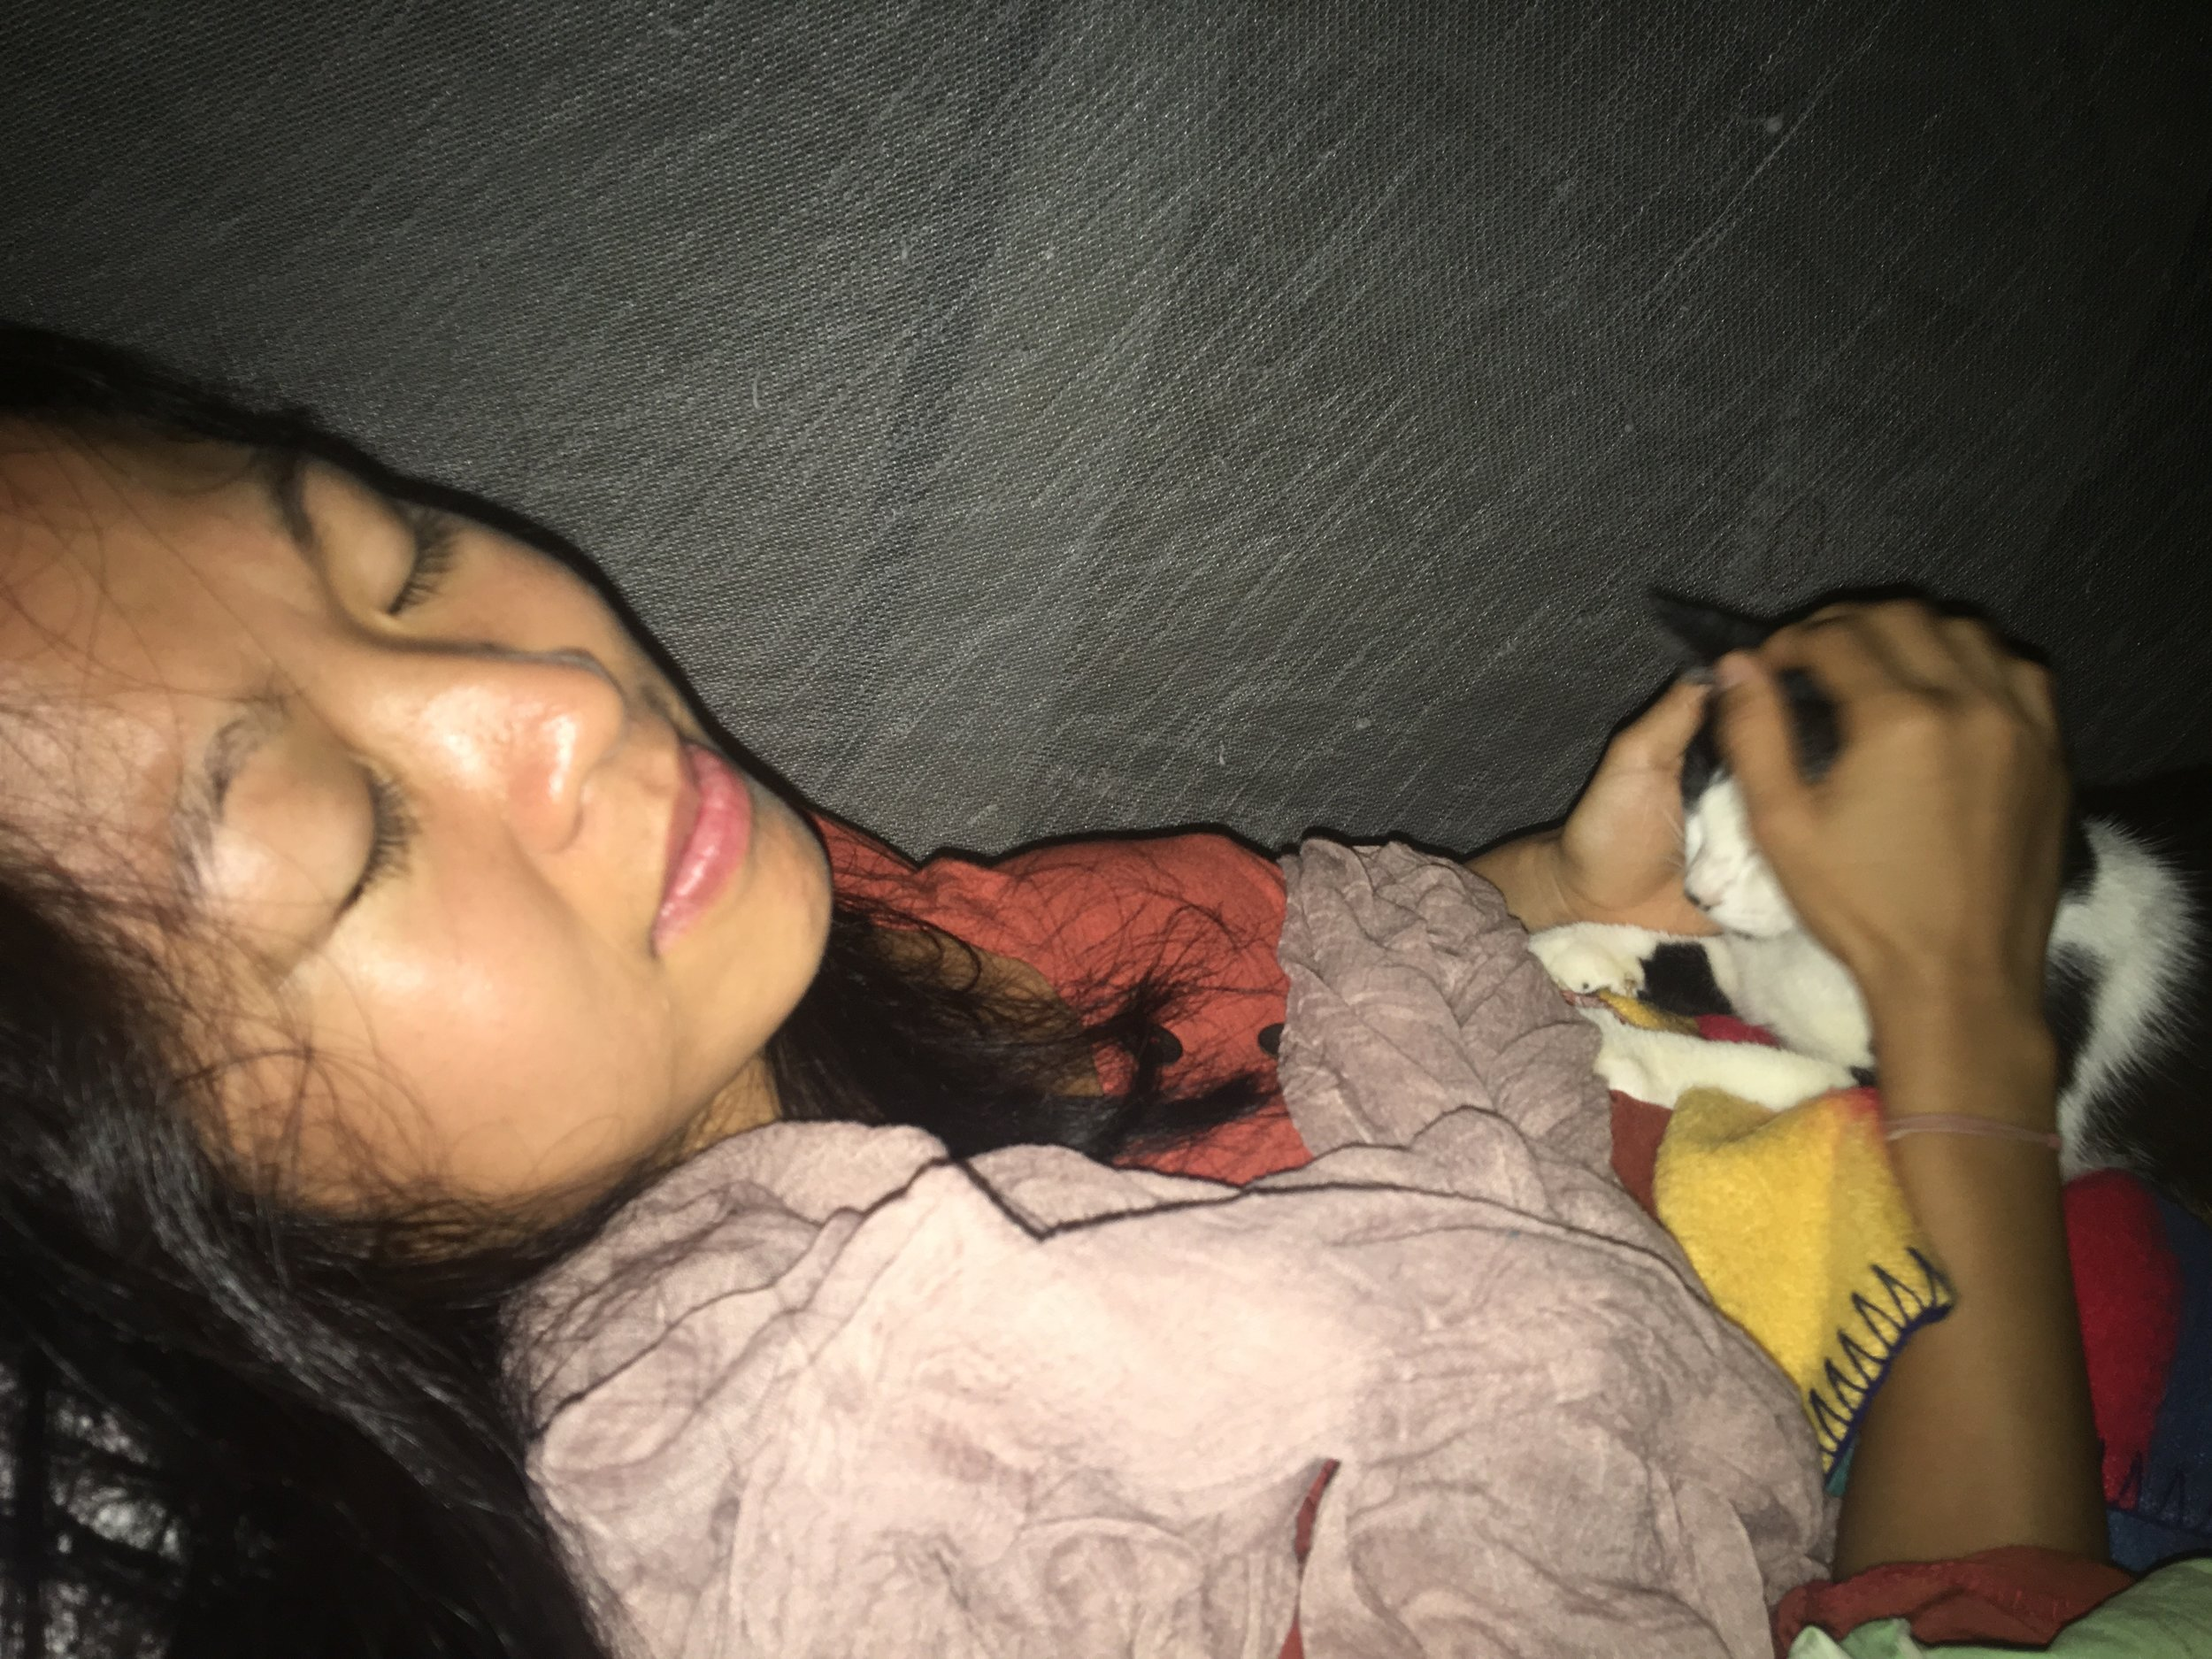 Last night at Panya. Little Ling Ling wanted ALL the cuddles #nosleeptilpanya #wylieoncameraalways